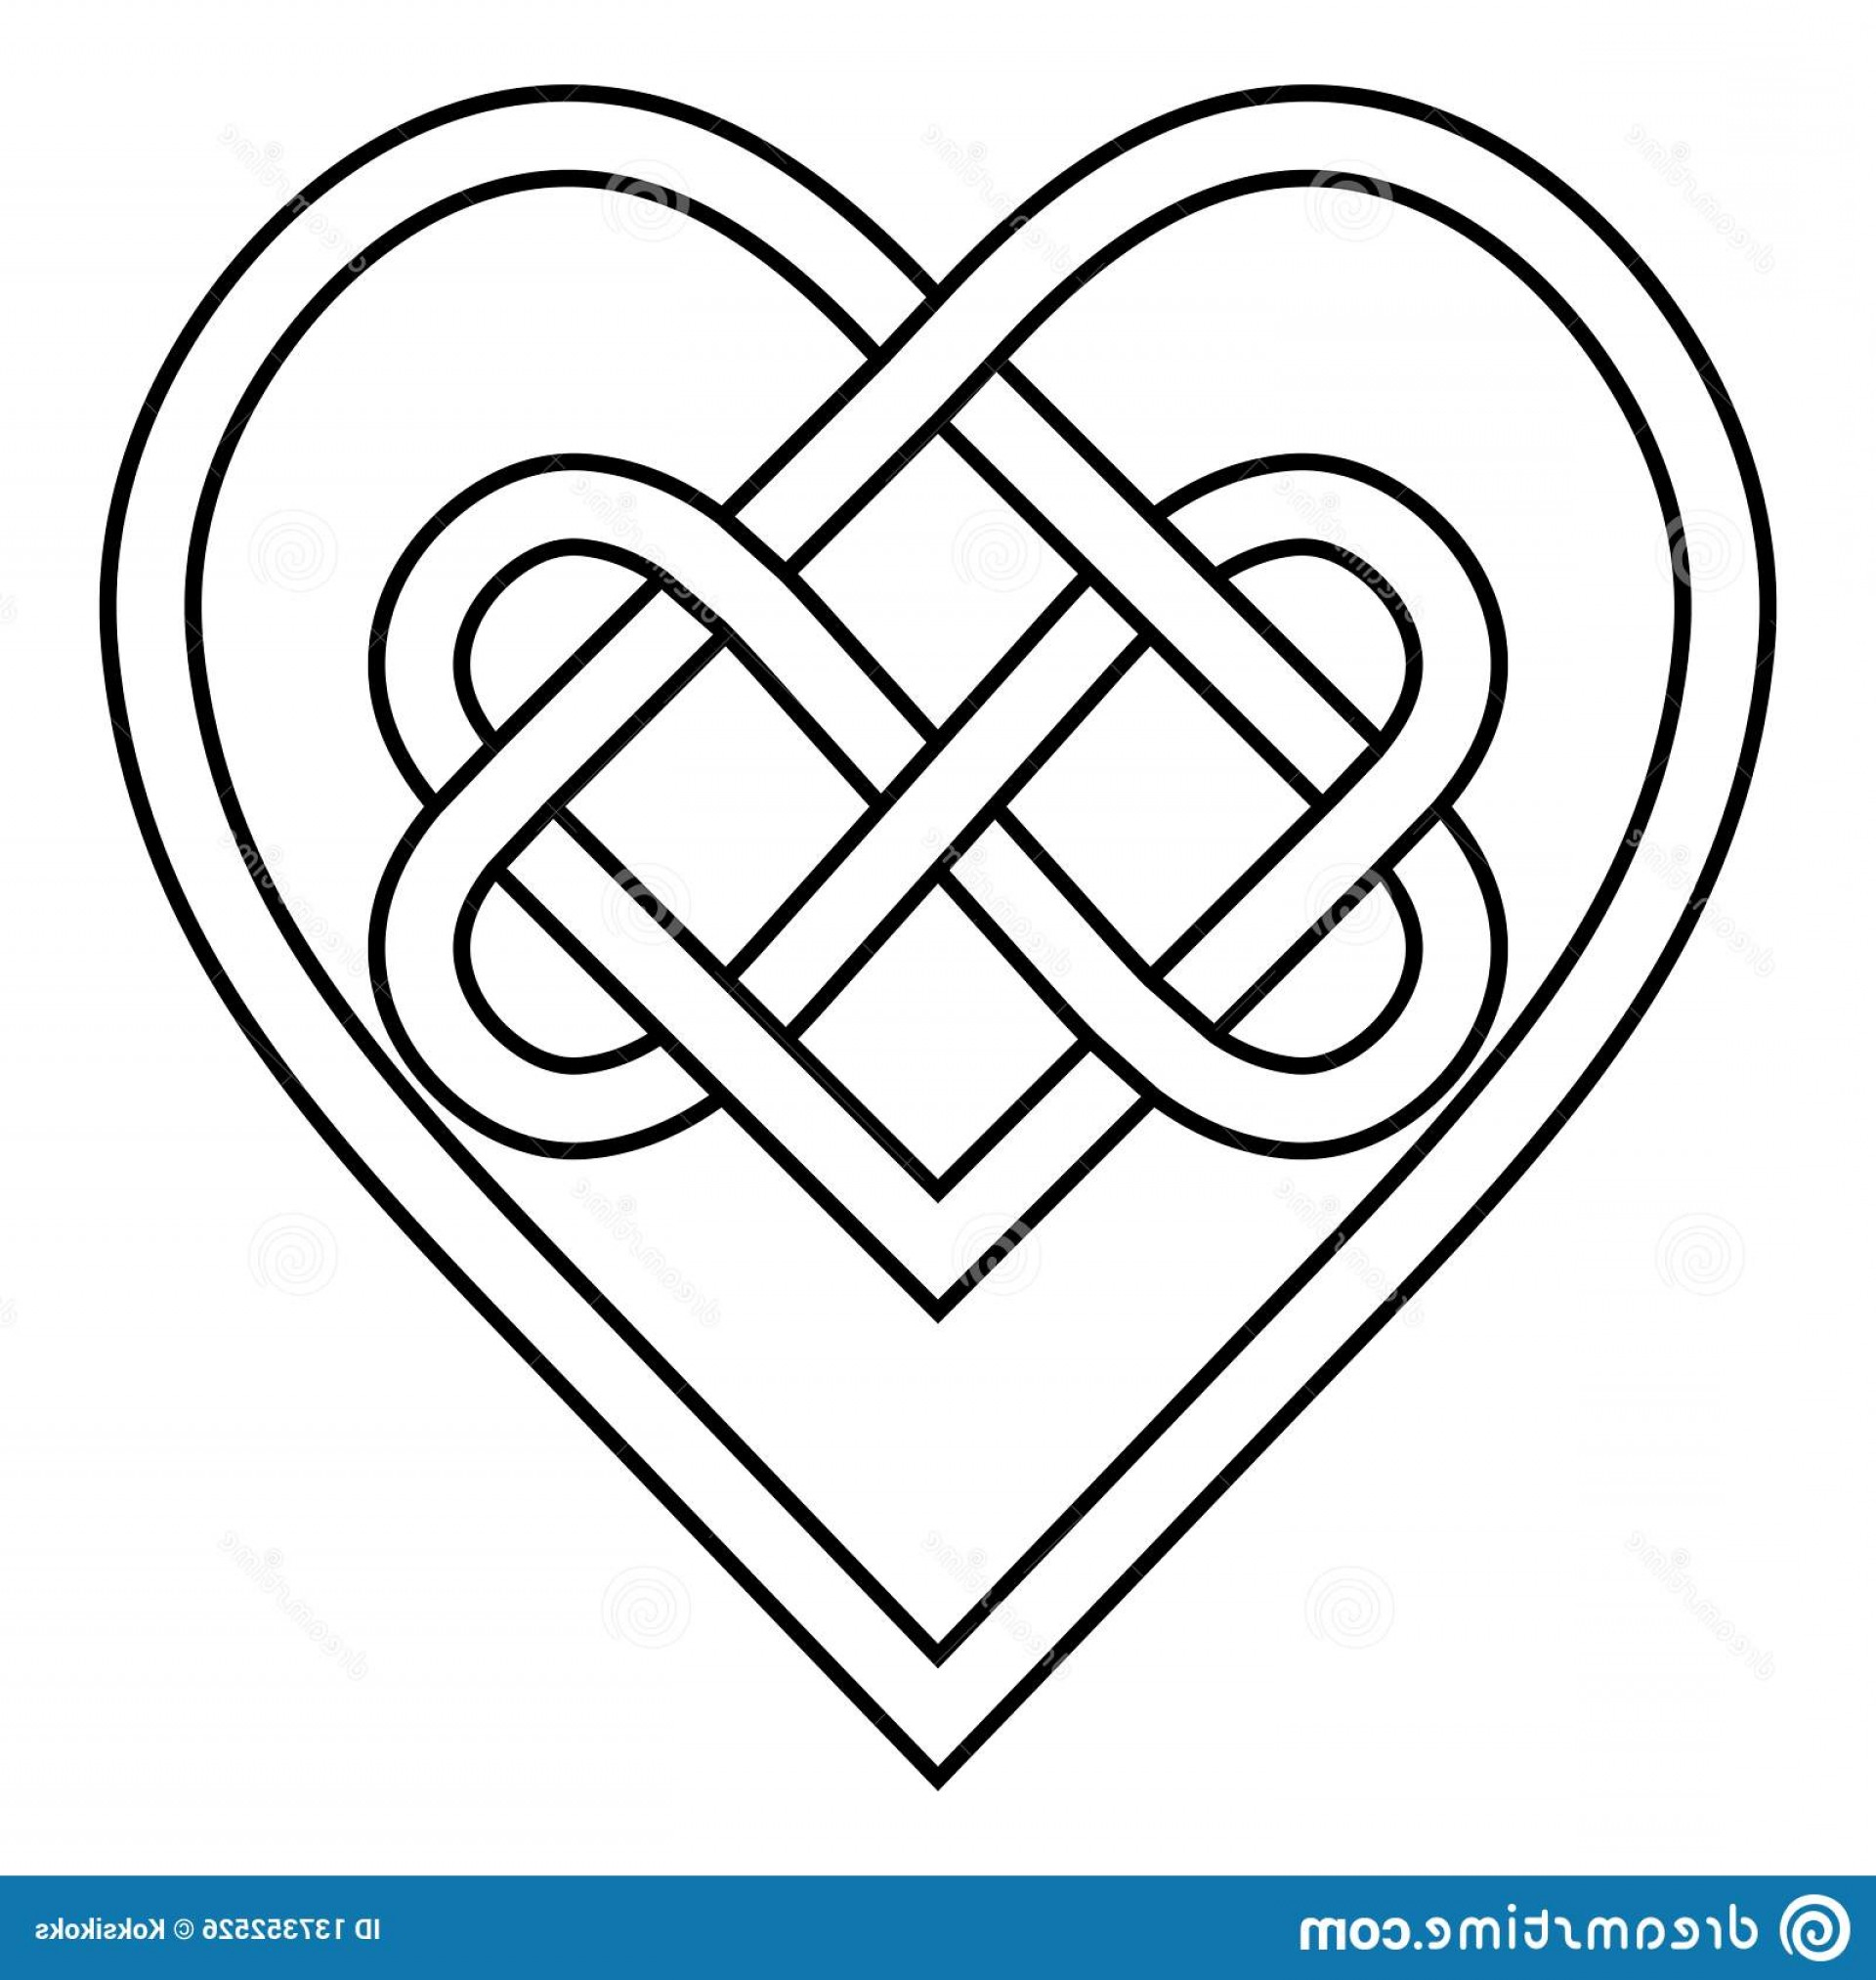 Infinity Heart Tattoo Vector: Celtic Knot Rune Bound Hearts Infinity Vector Symbol Sign Eternal Love Tattoo Logo Pattern Hearts Celtic Knot Rune Bound Image